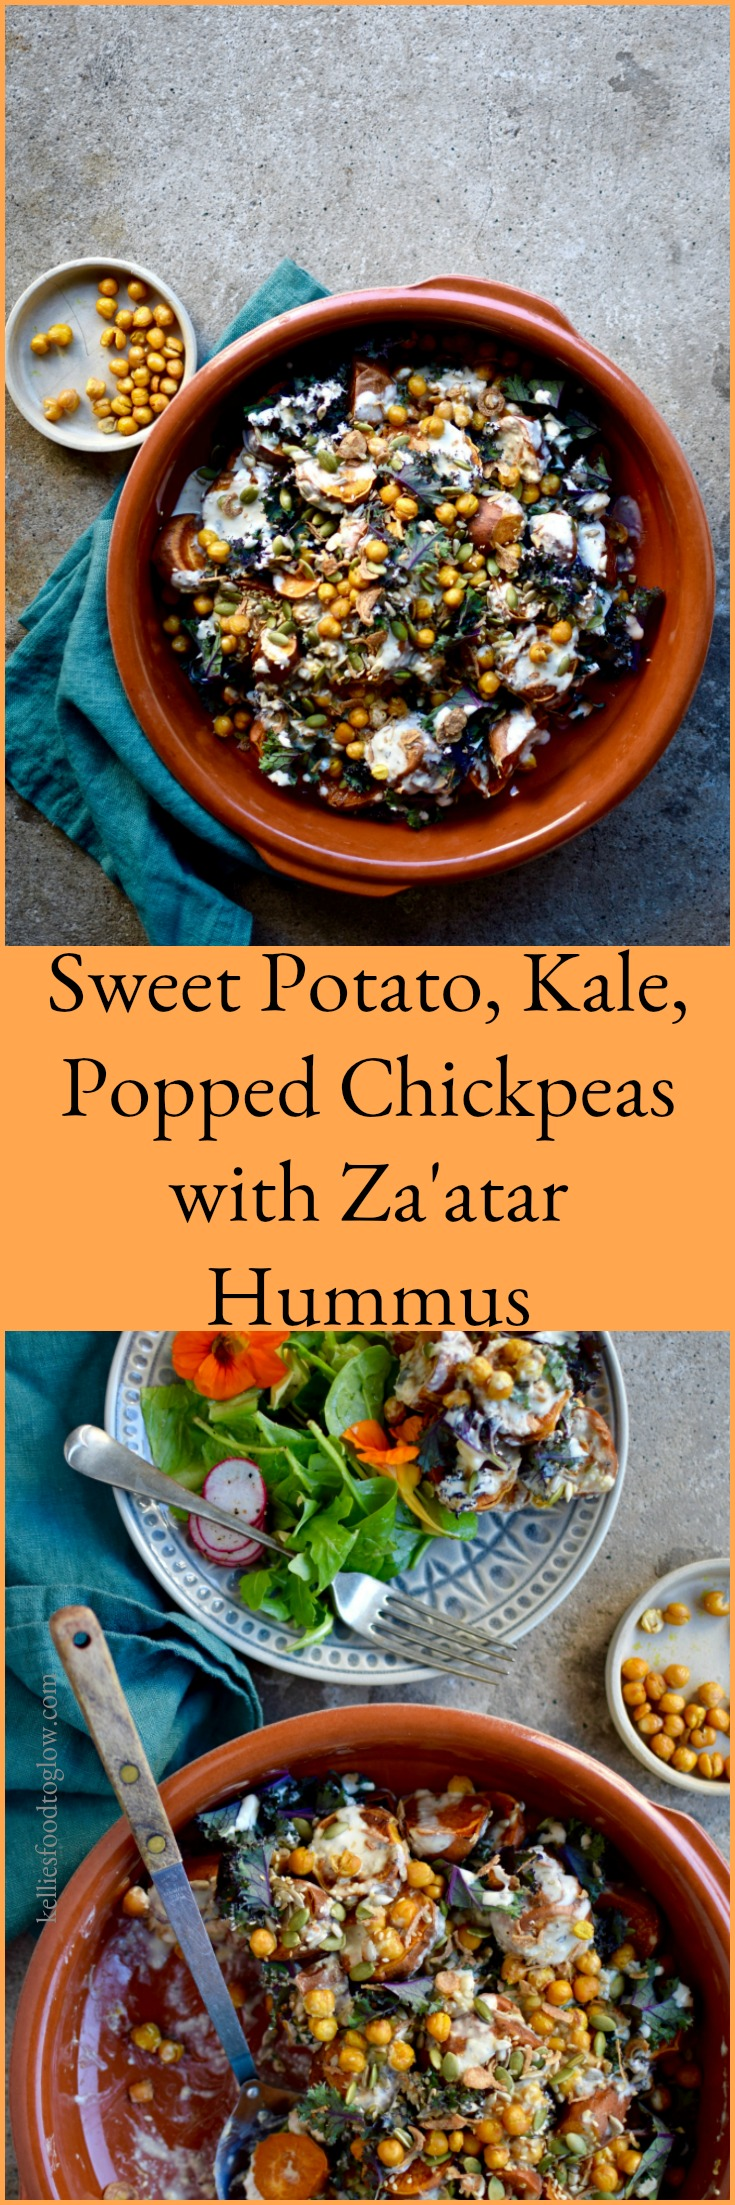 Plump disks of roasted sweet potato, shreds of kale, popped golden turmeric chickpeas, all slathered in an easy and hugely nourishing za'atar hummus dressing. An easy vegan lunch, side dish or salad - the choice is yours.